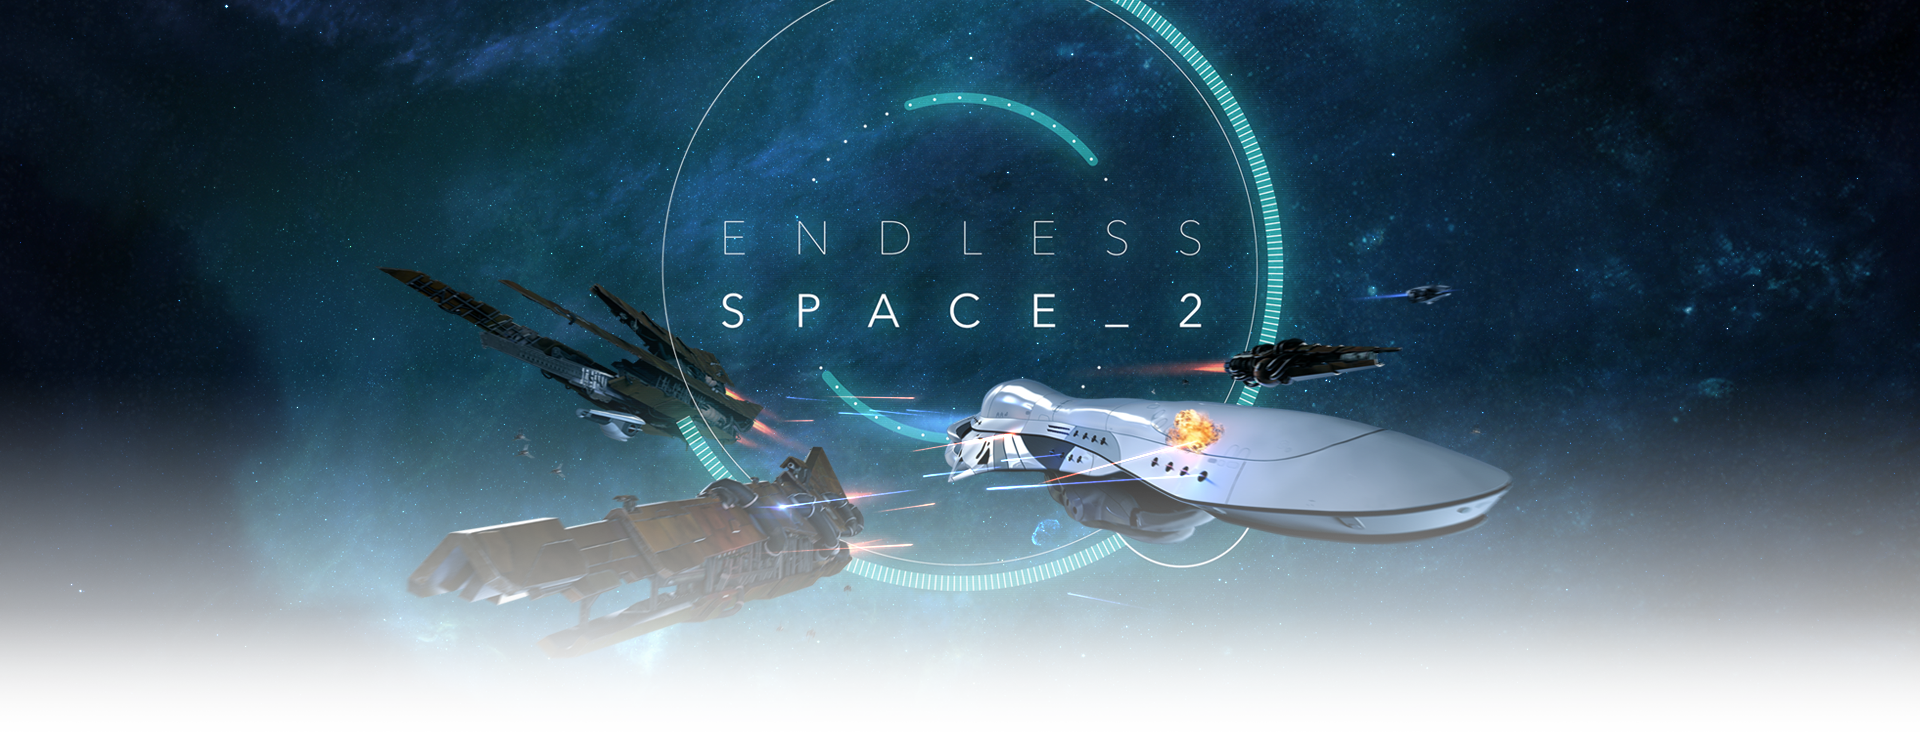 Endless Space 2 telecharger gratuit de PC et Torrent